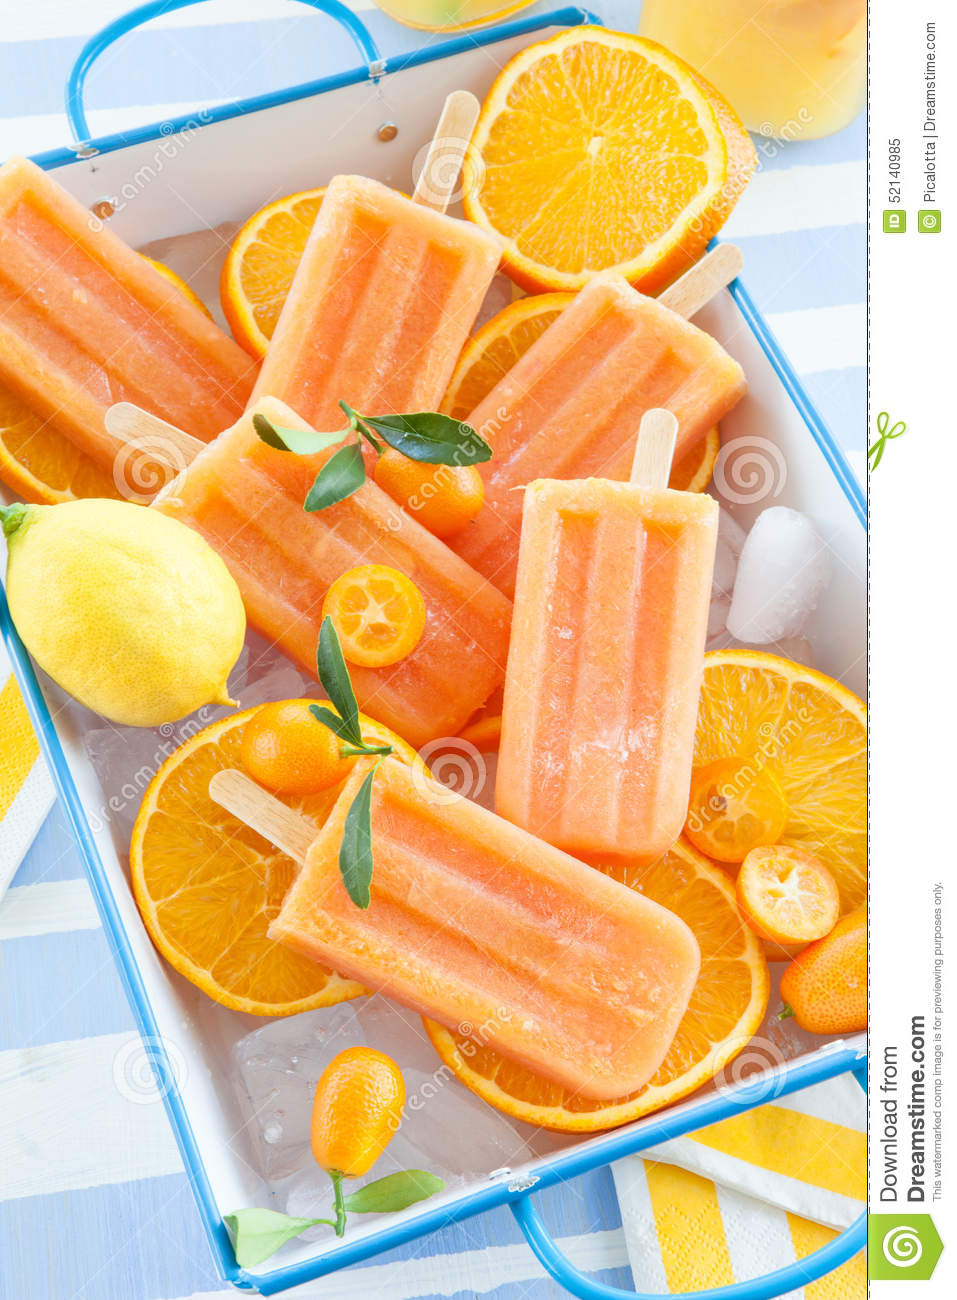 Homemade orange popsicles royalty free stock photo for Who invented frozen popsicles and in what year